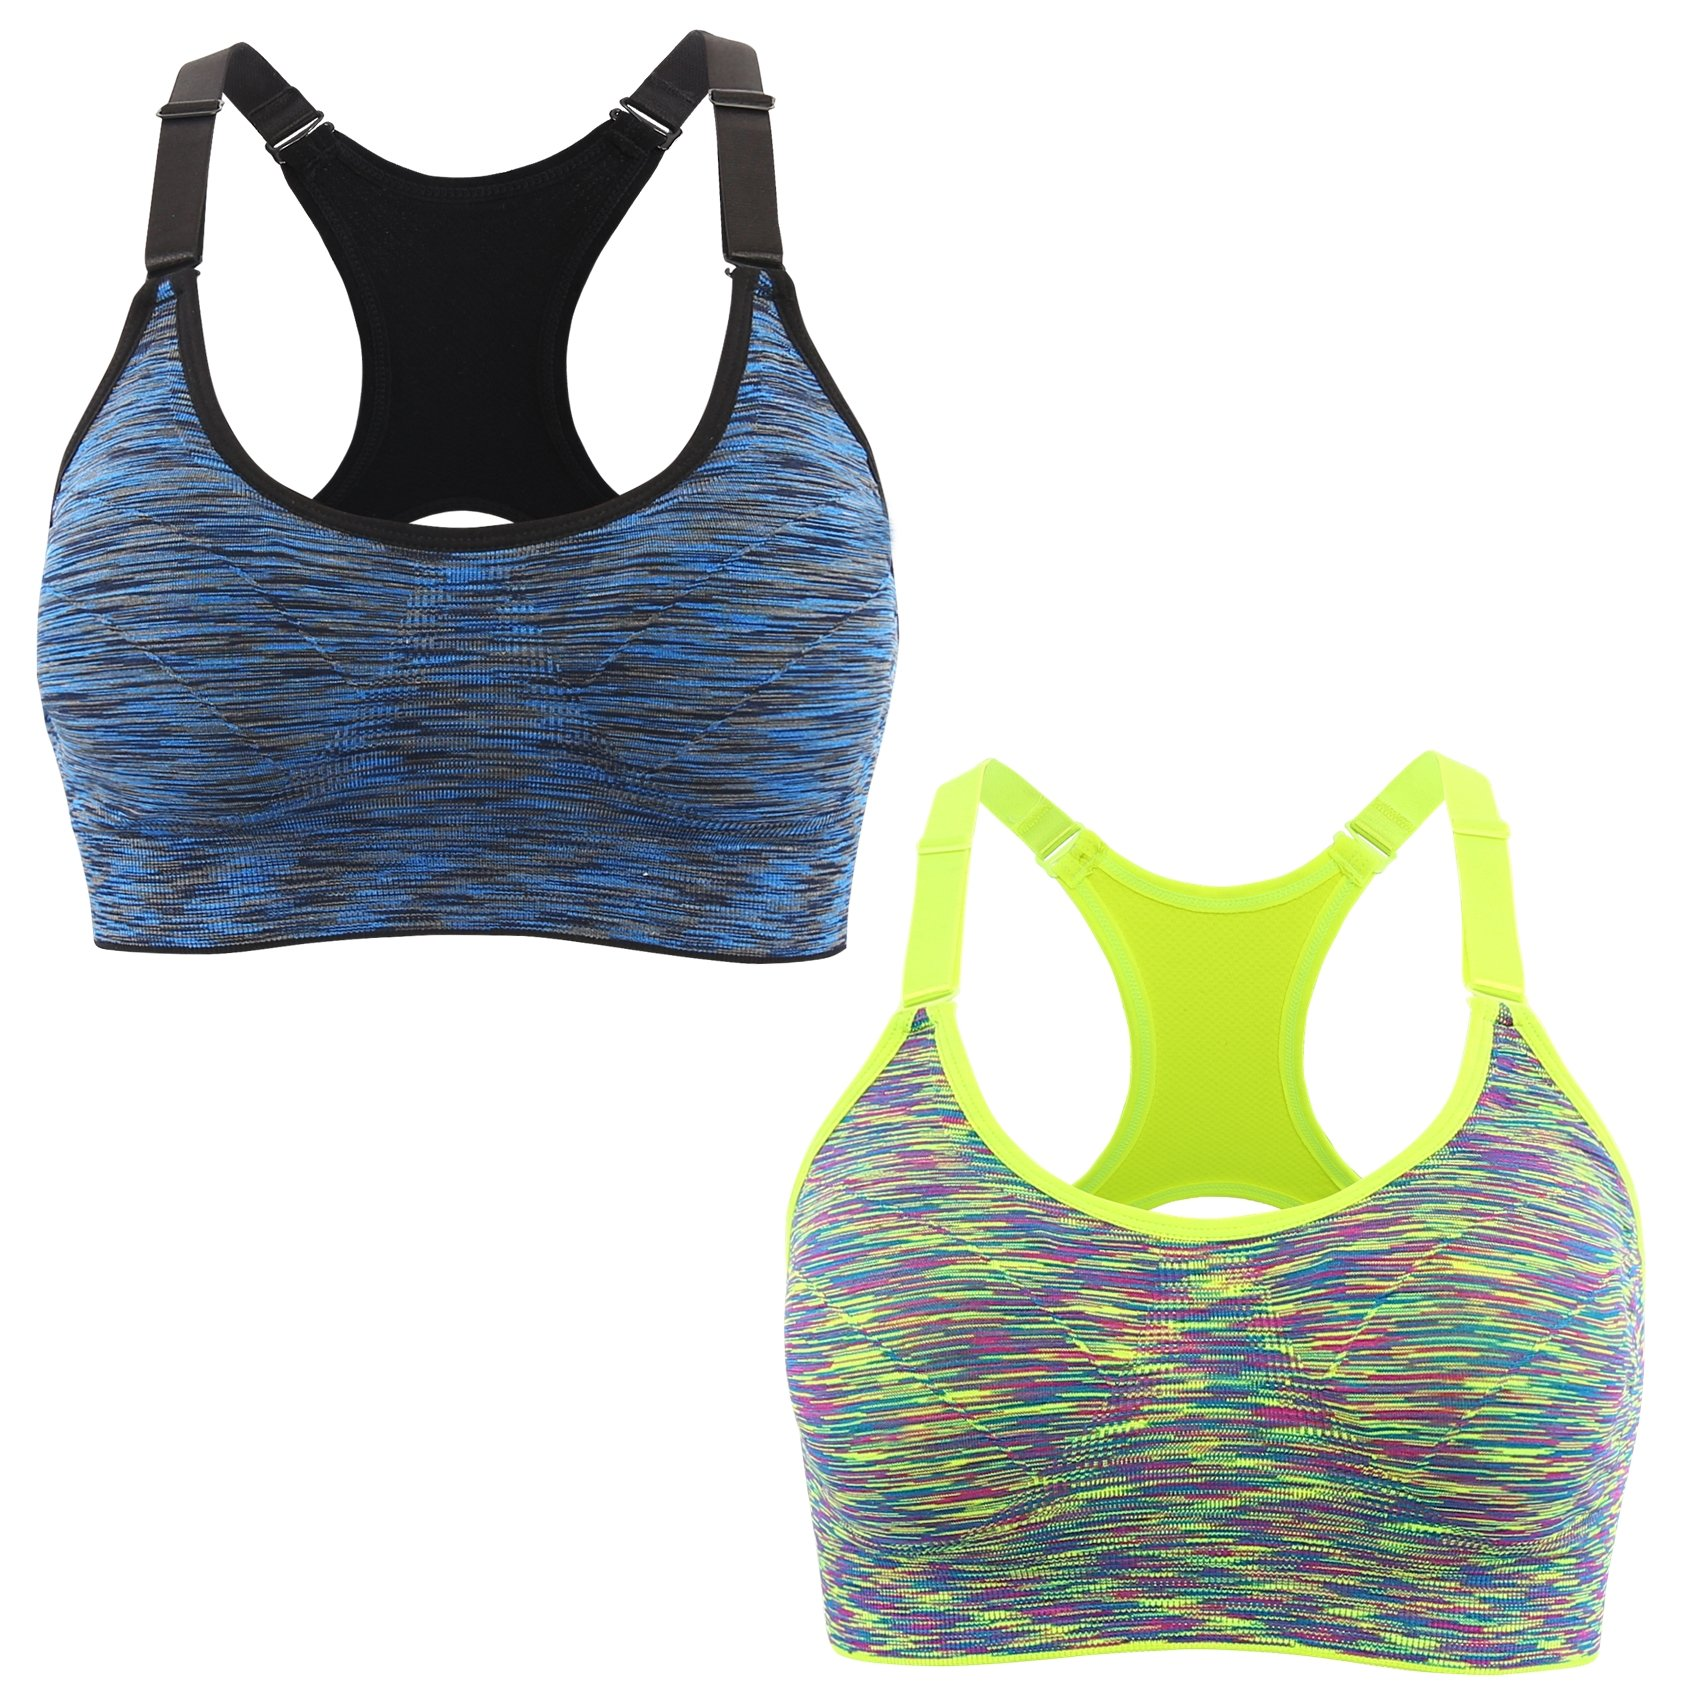 EMY Sports Bra 2 Pack Cami Space Dye Seamless Wirefree Stretchy Removable Pads for Fitness Gym Yoga Running (XL, 2 Pack-BL)